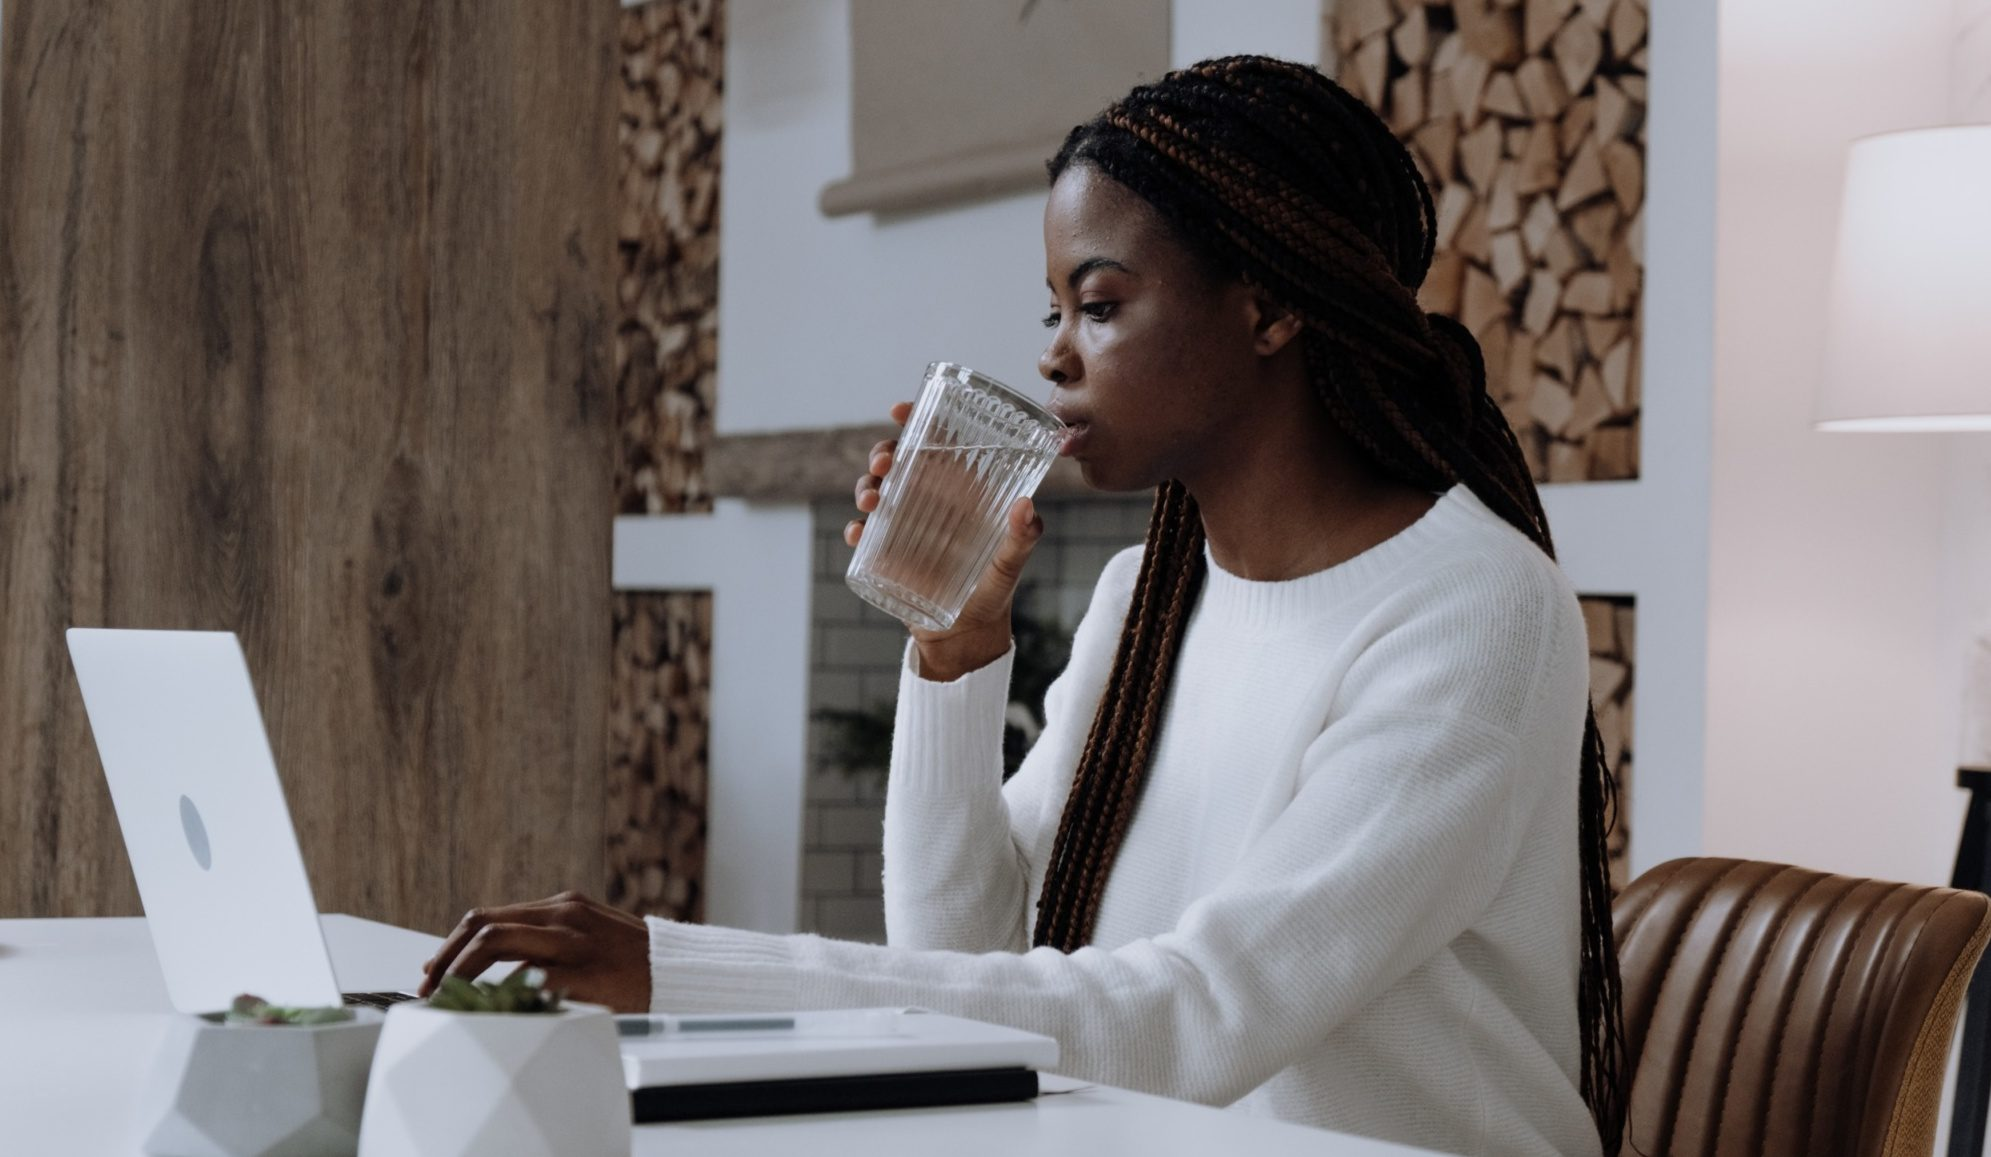 black woman drinking water and working on laptop